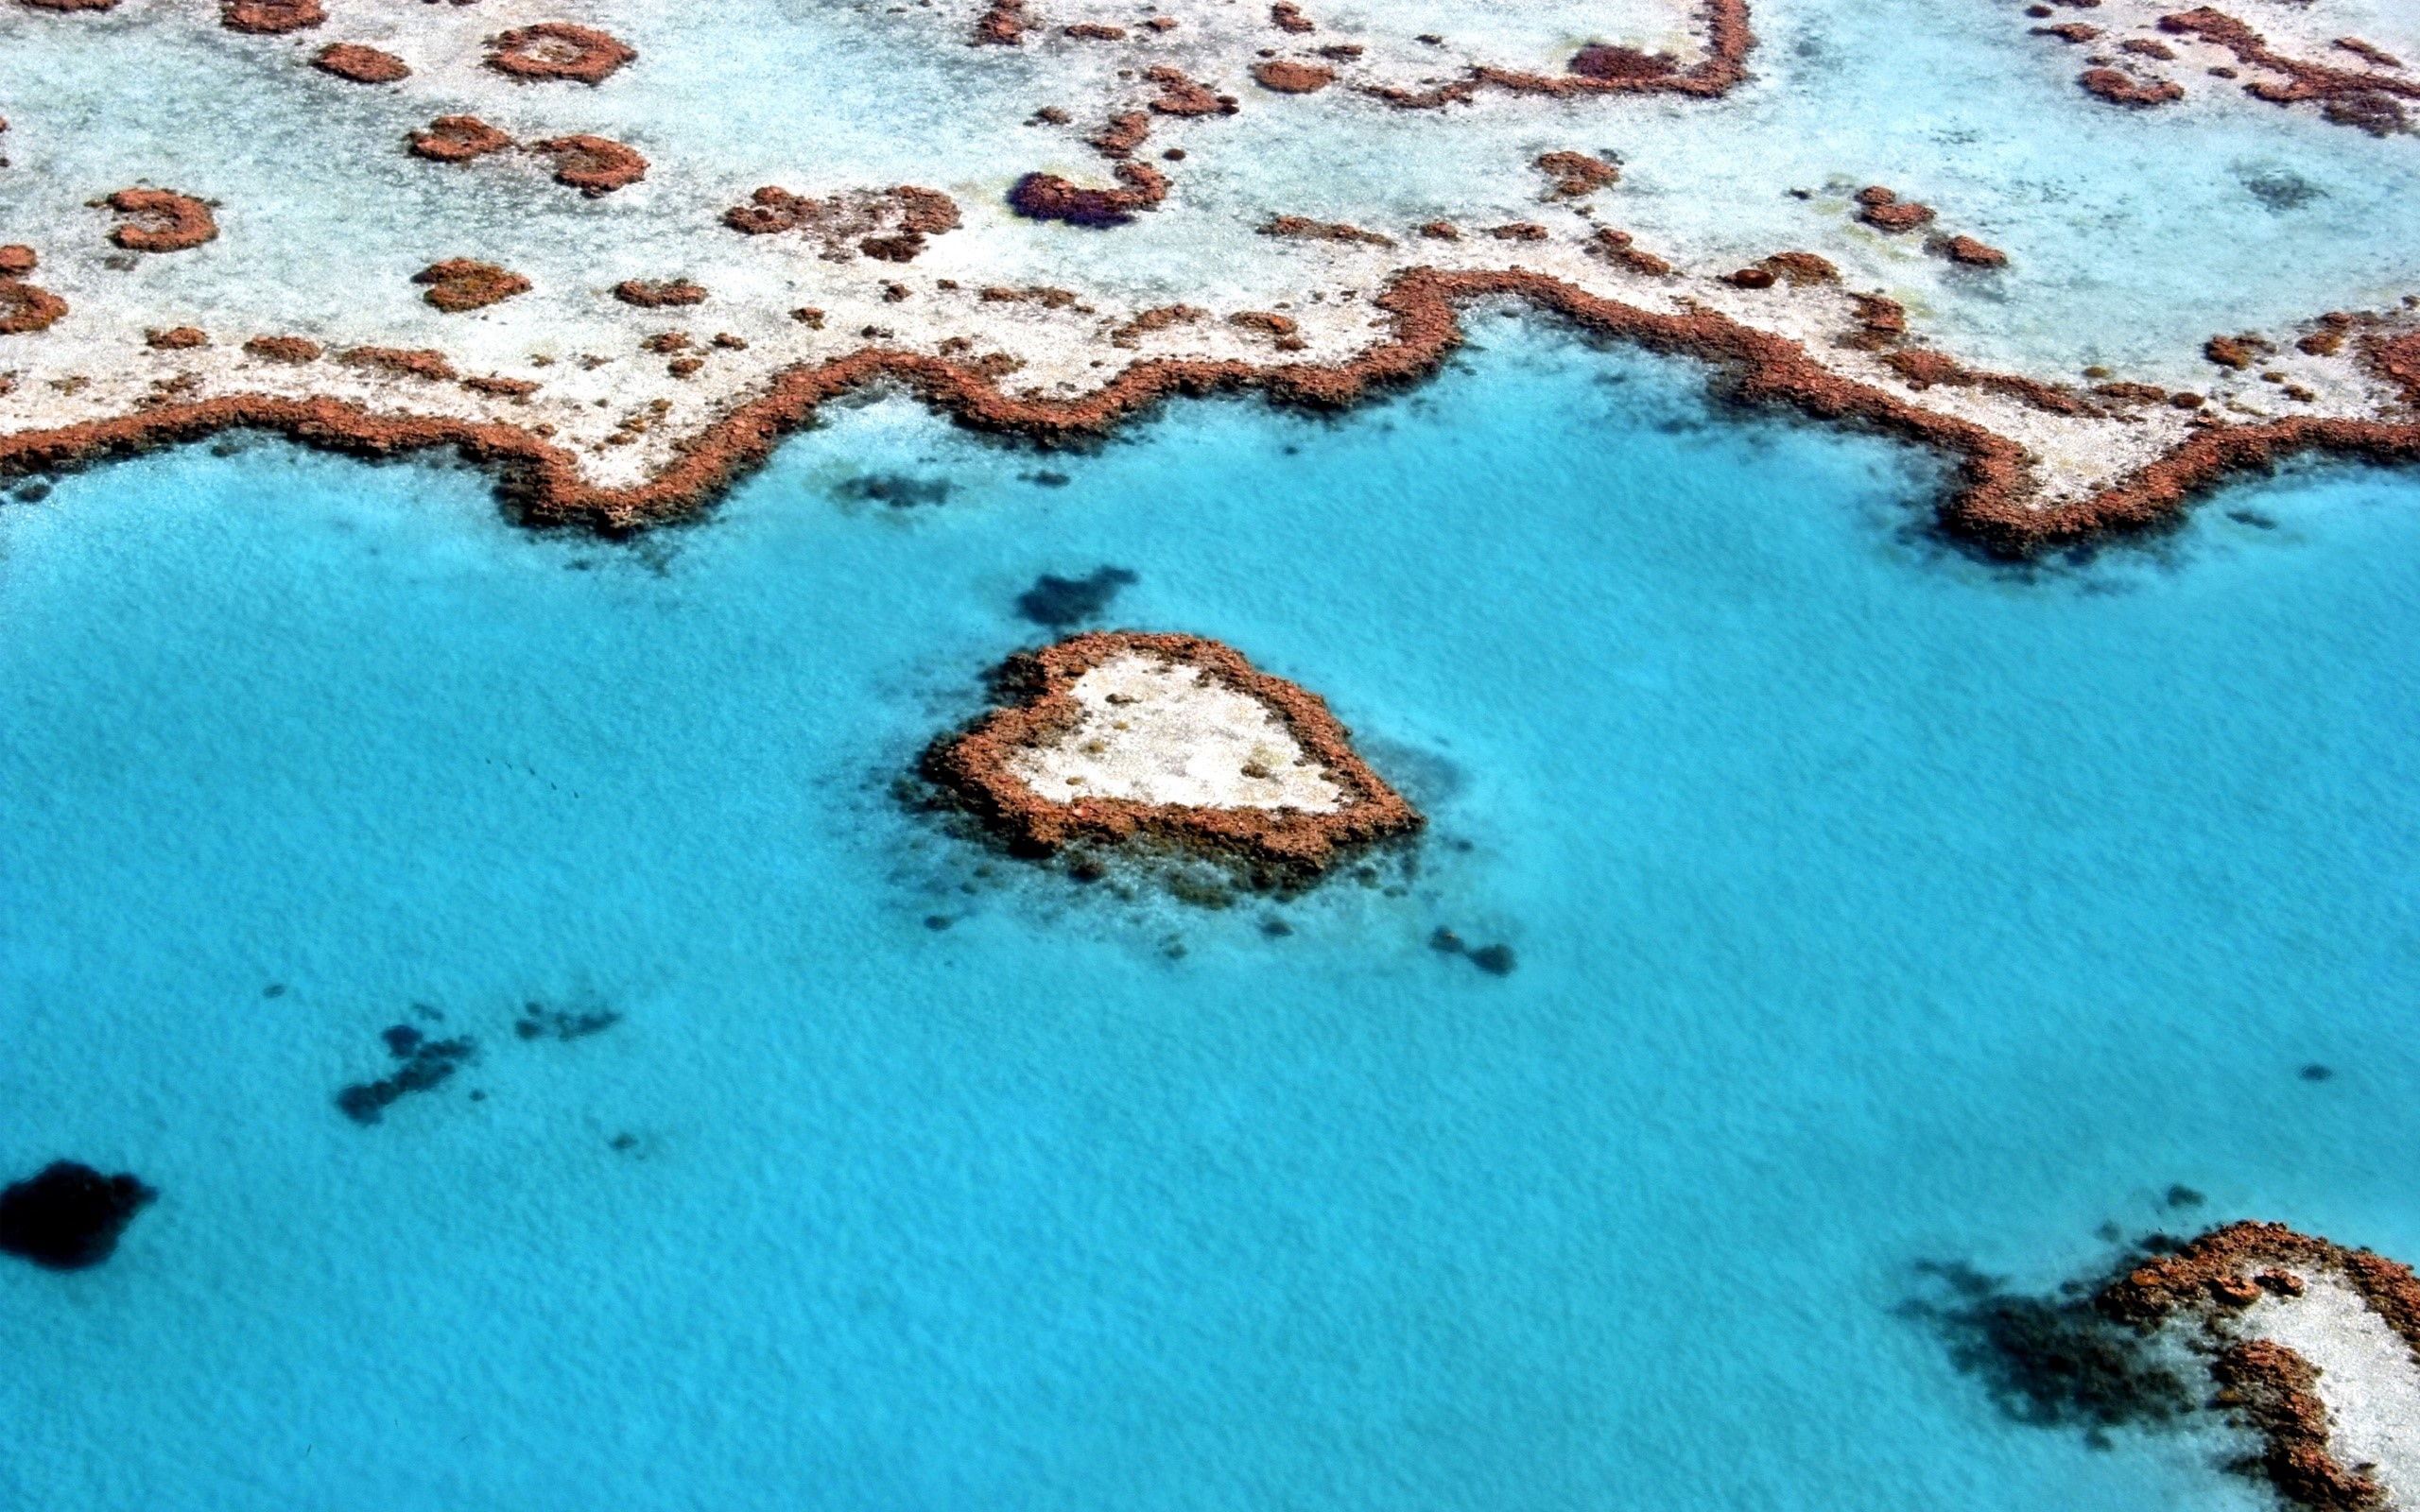 Wallpaper Reef in the shape of a heart